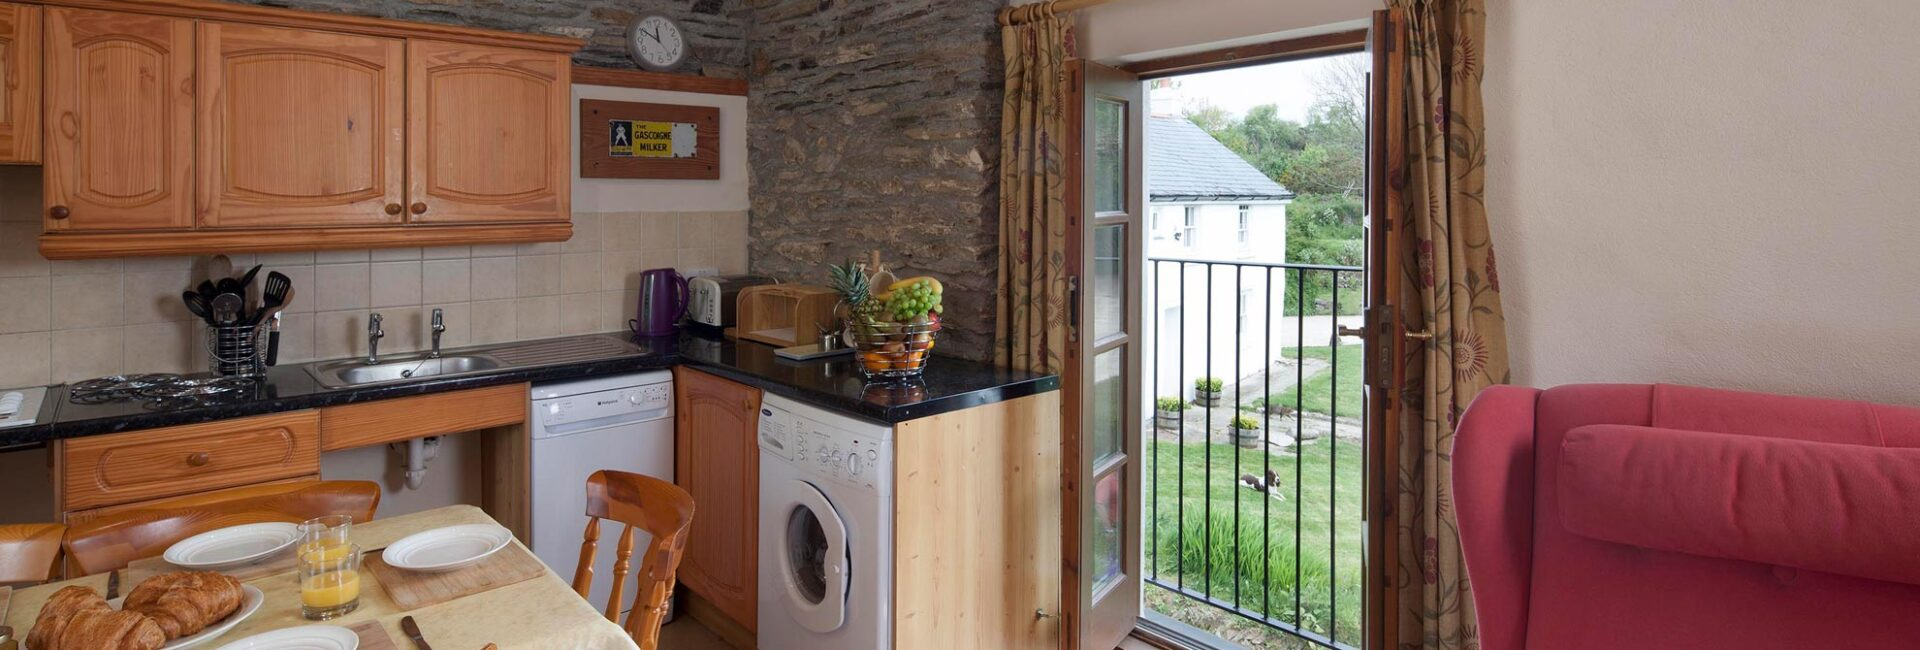 Valley View kitchen with washing machine, dishwasher, clear underspace to the hob and sink, french doors and electric riser recliner chair